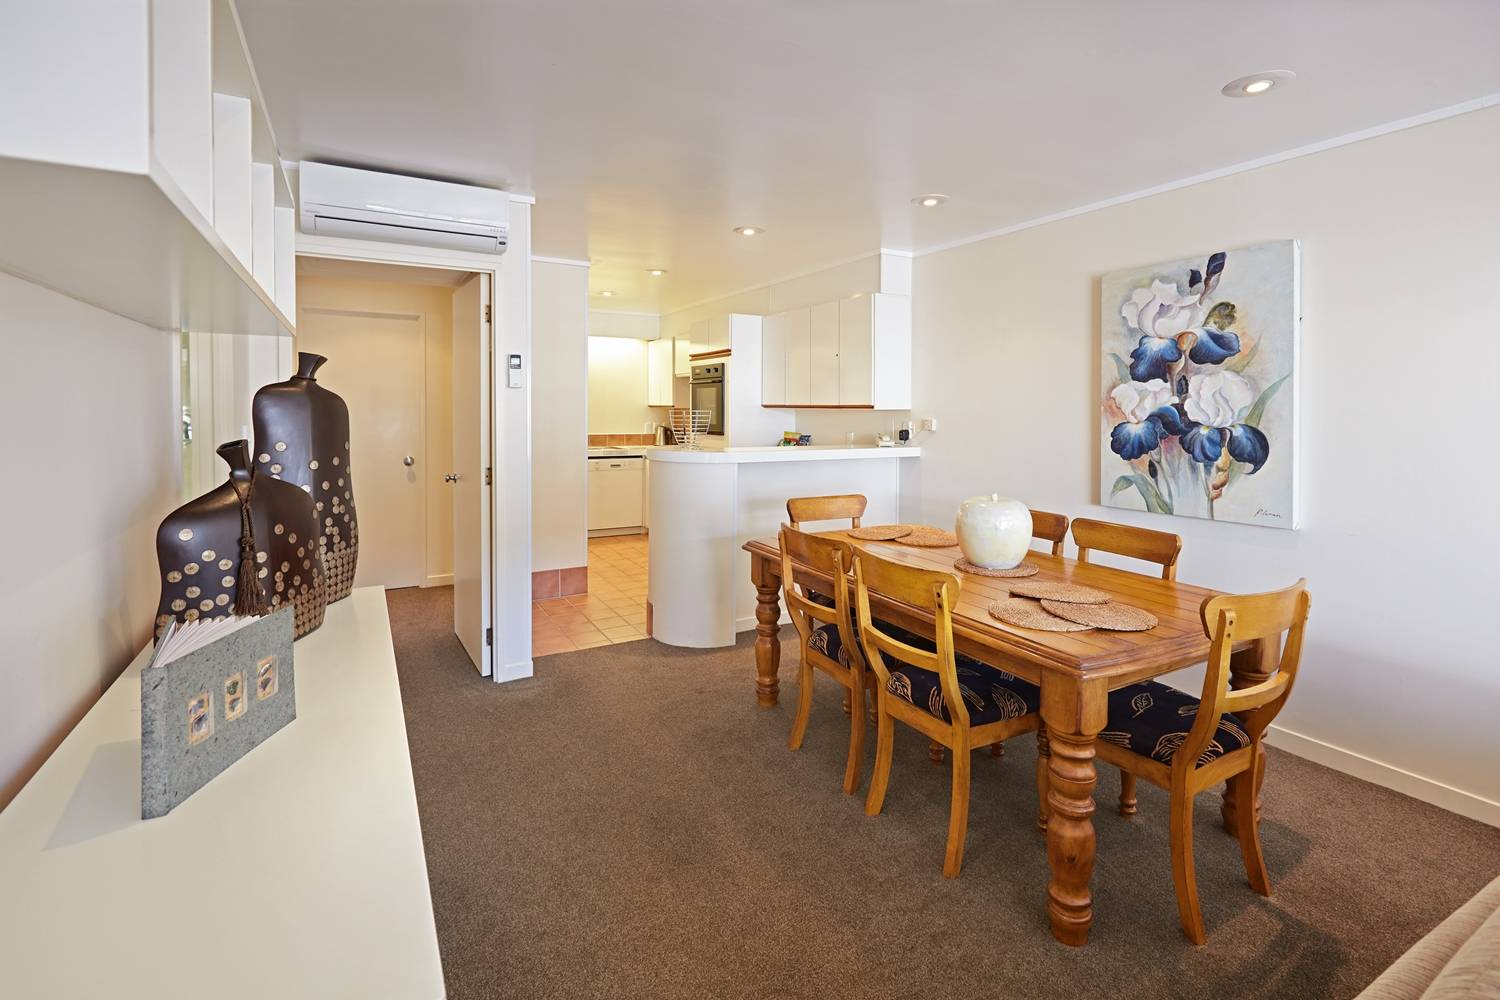 pioneer-apartments-paihia-pool-view-garden-level-dining-kitchen.jpg